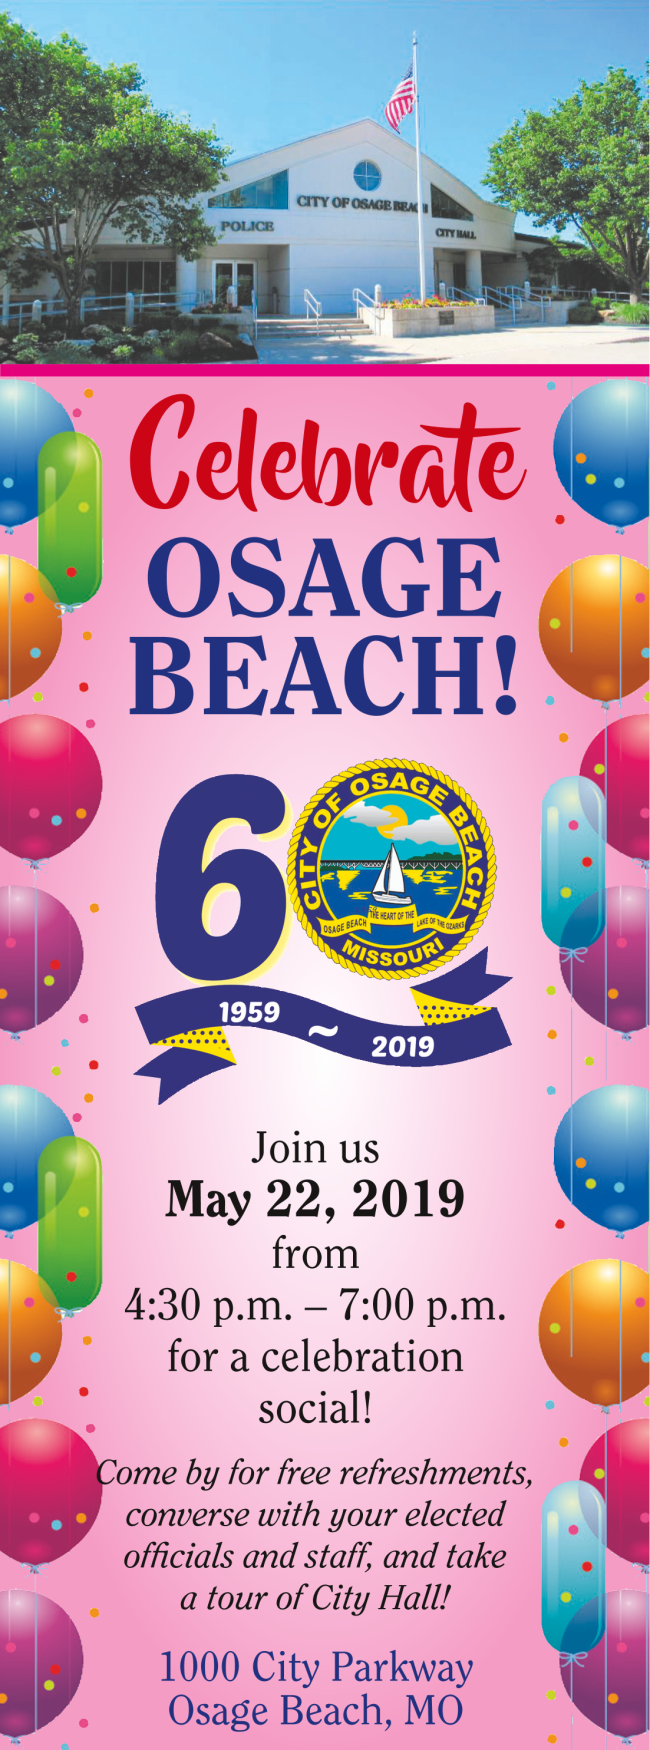 Osage Beach 60th Anniversary